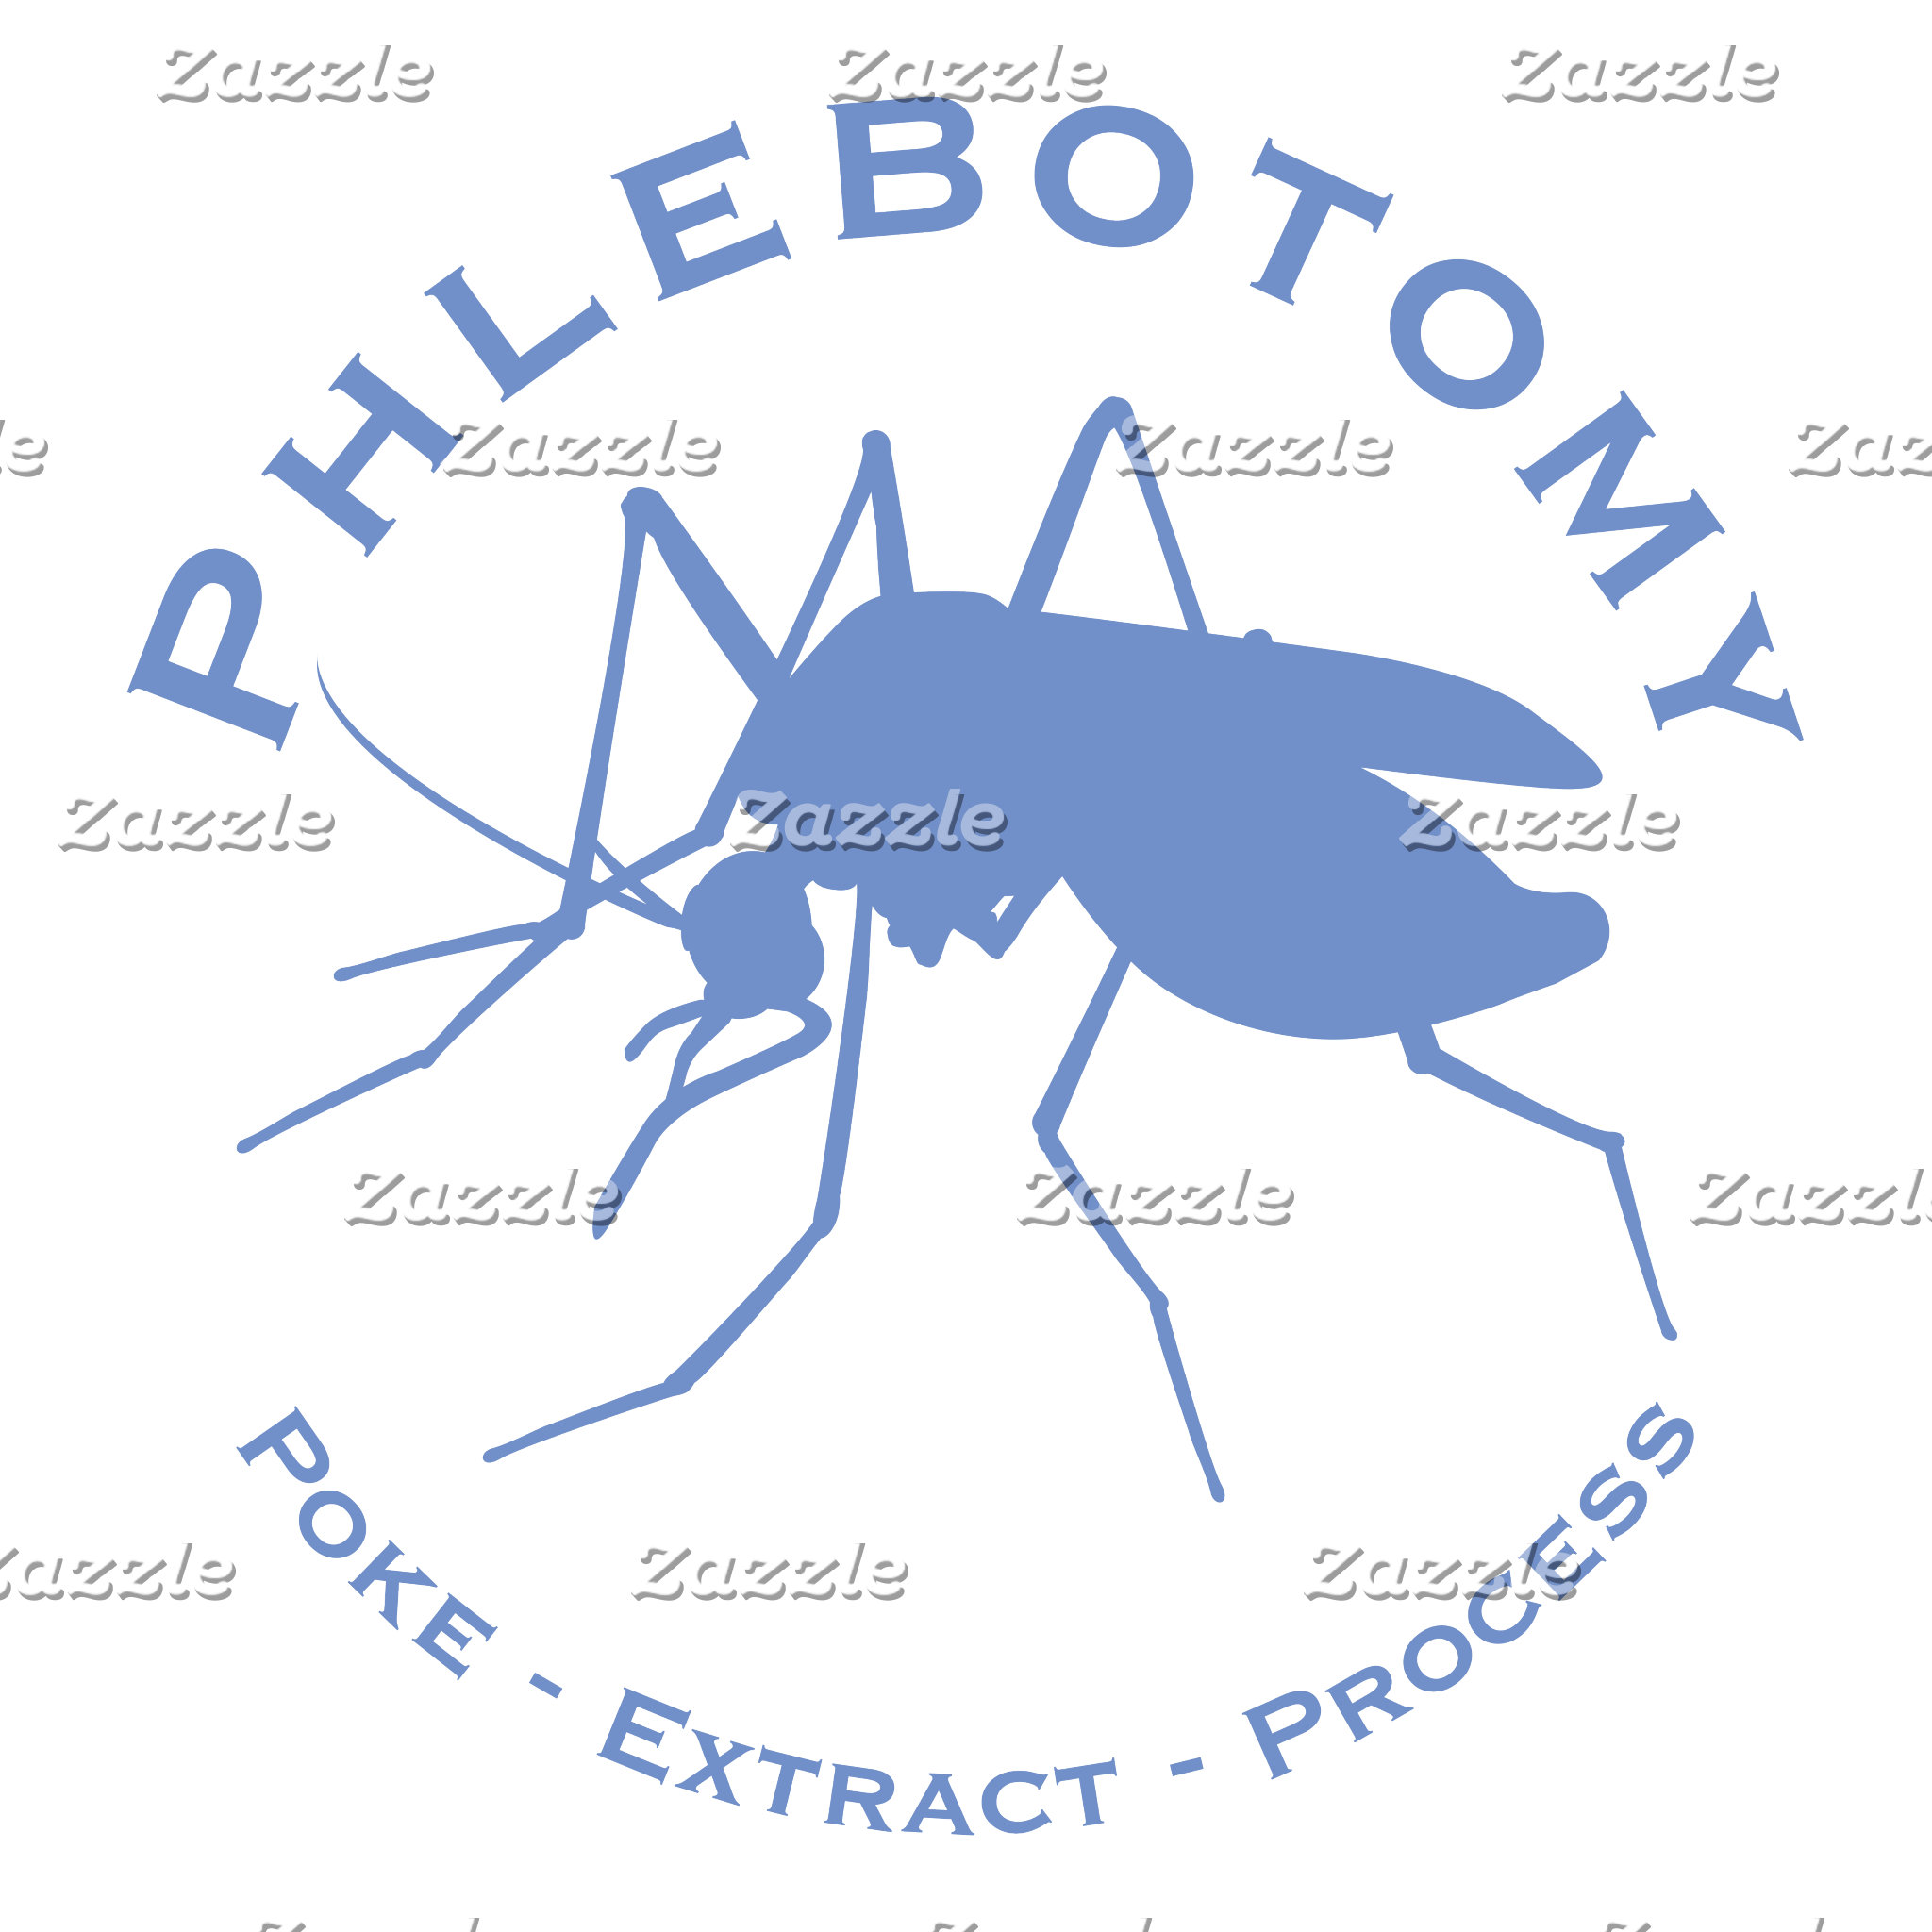 Phlebotomy - Poke - Extract - Process